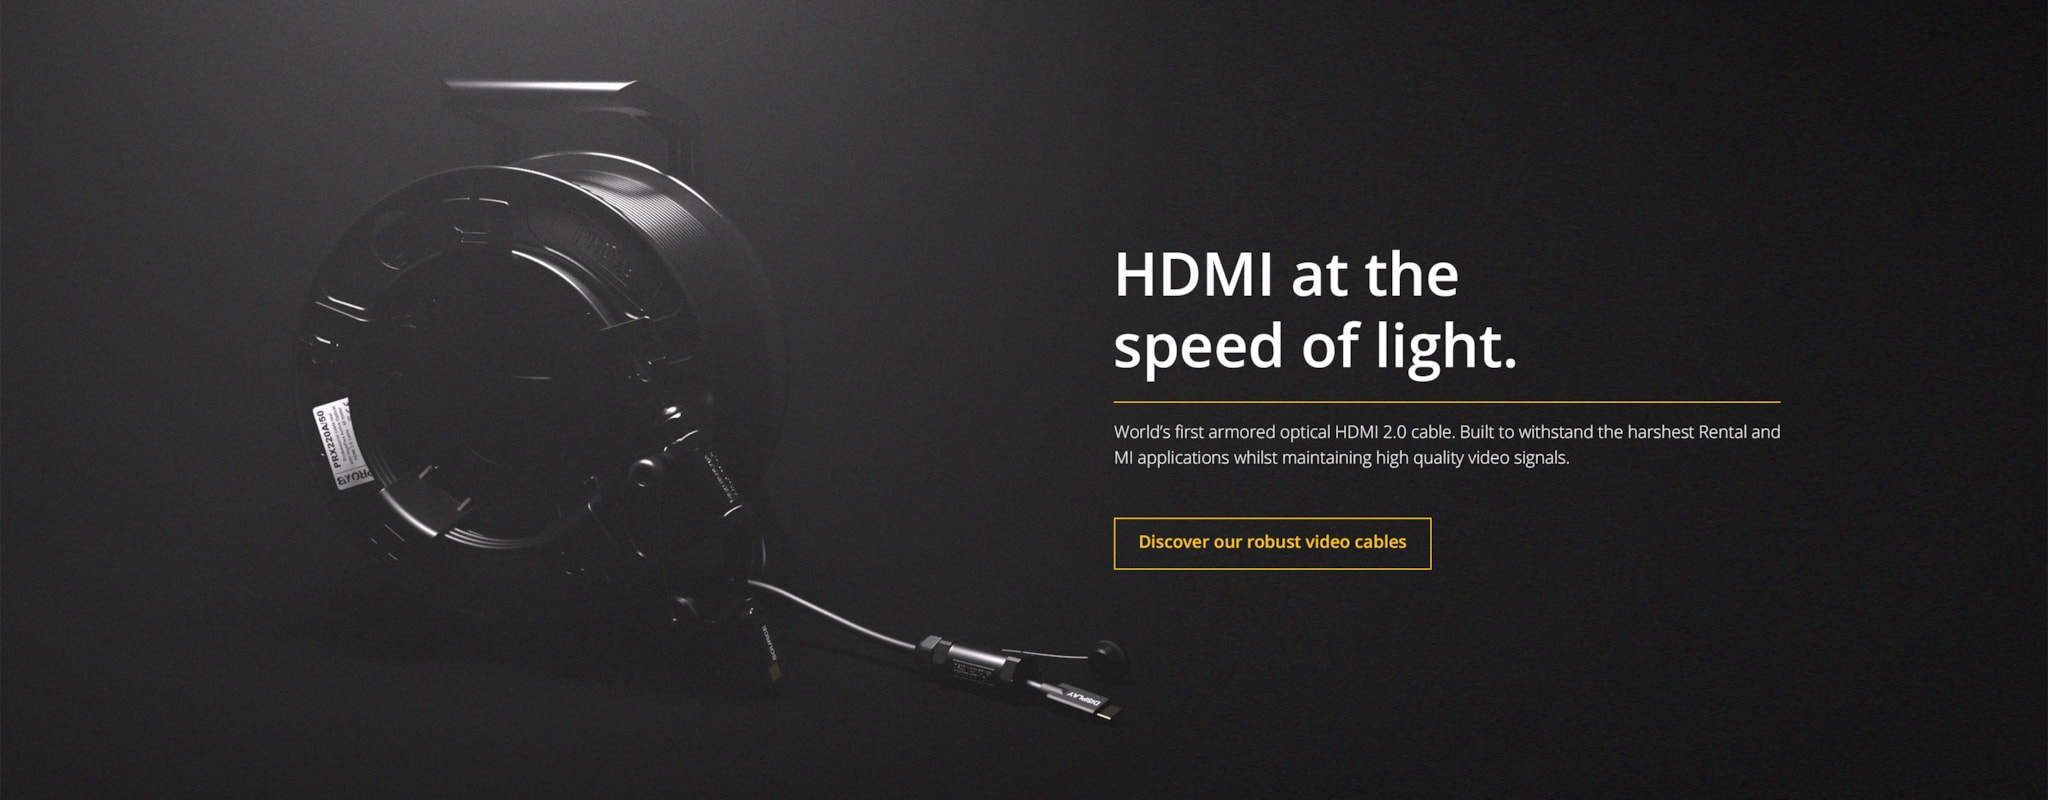 World's first armored optical HMDI 2.0 cable.